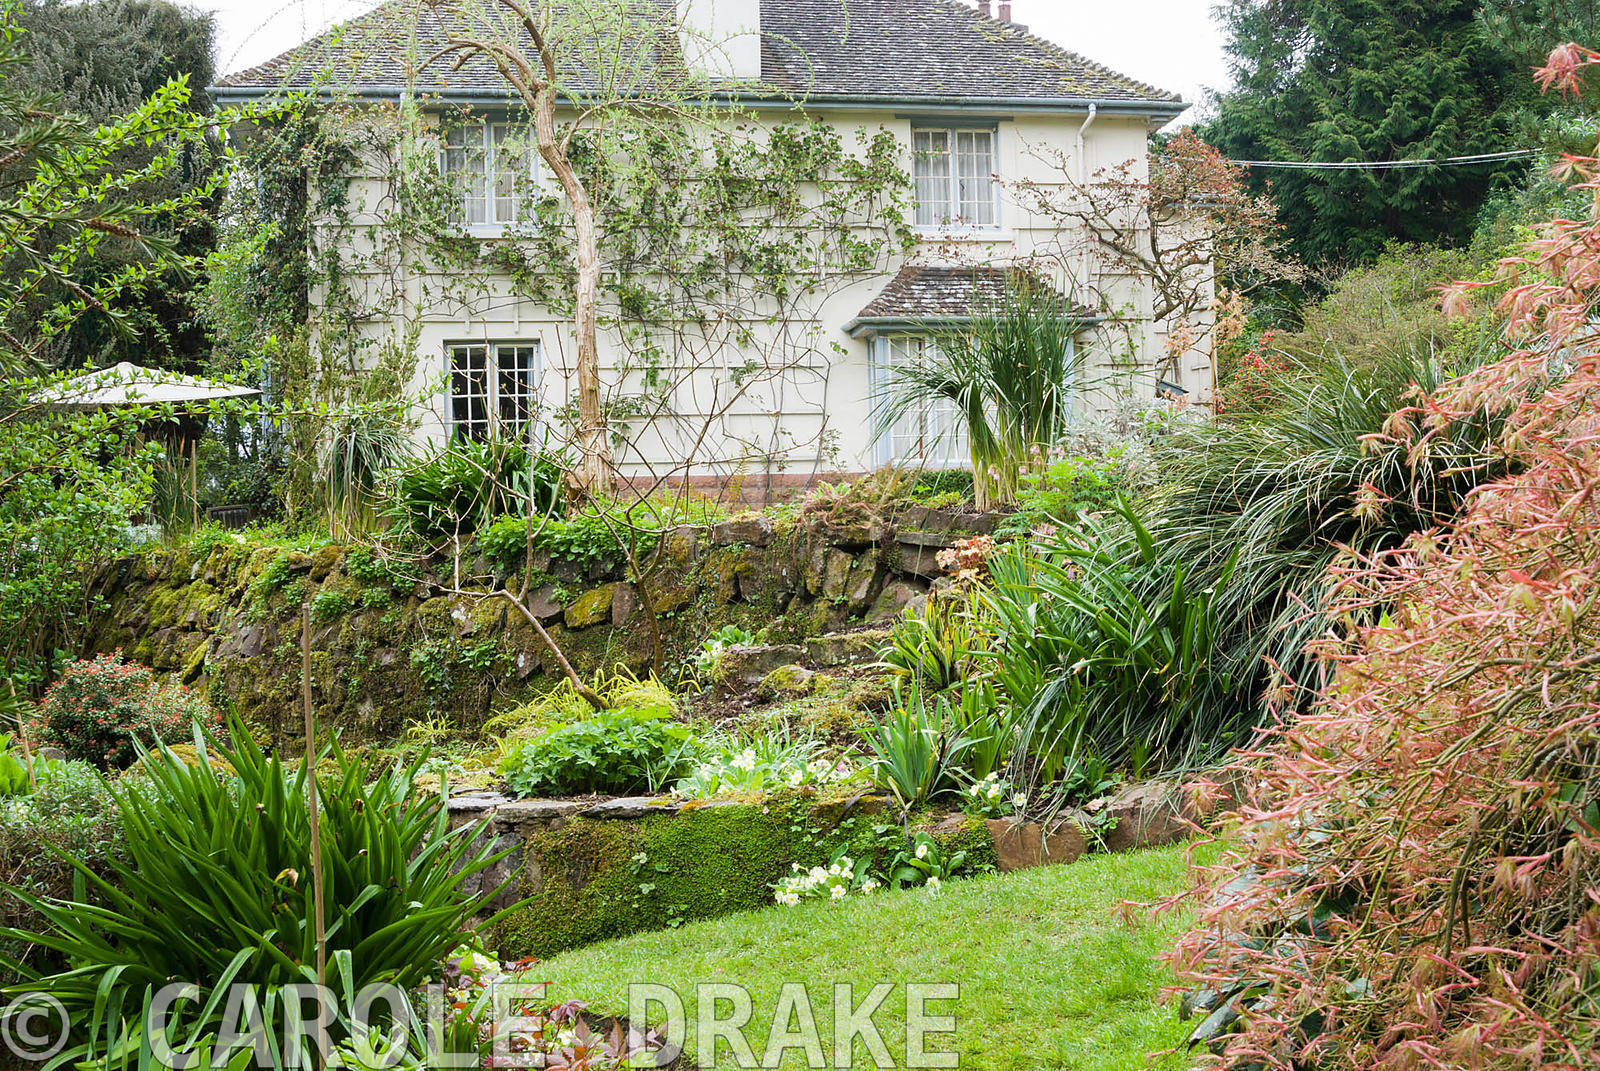 The house at Greencombe sits on a level terrace with slopes above and below. Greencombe Garden, Porlock, Somerset, UK